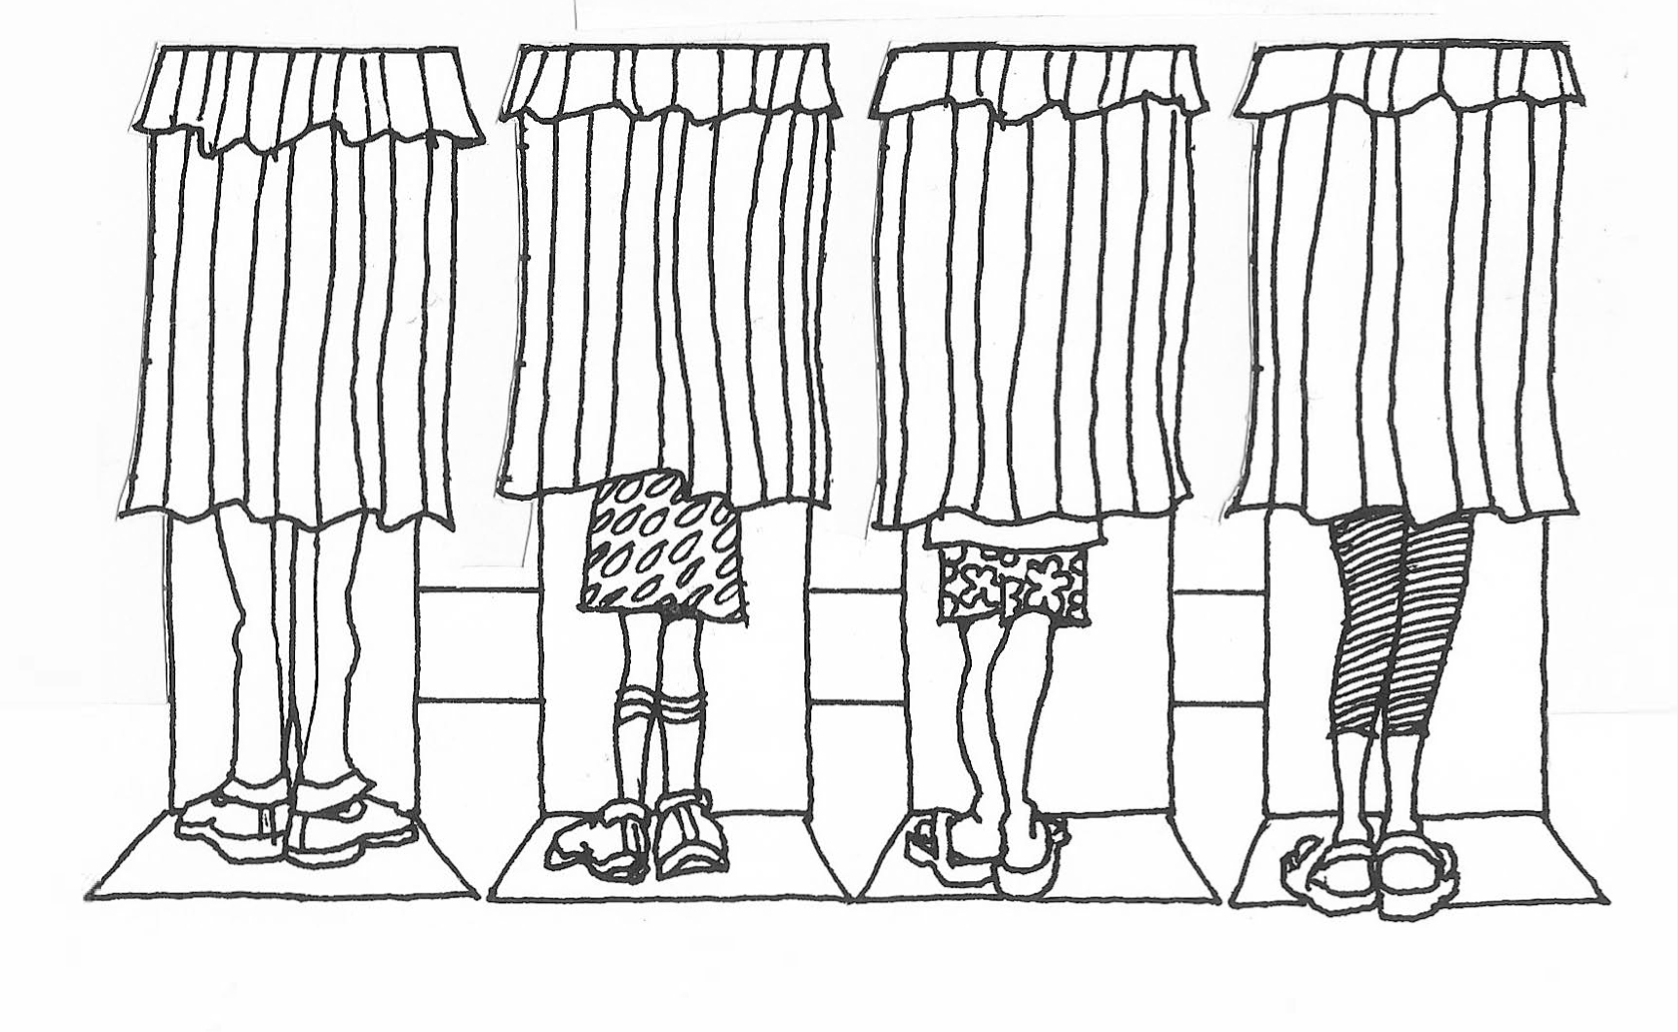 Illustration of voter in voting booths for the upcoming 2020 political elections